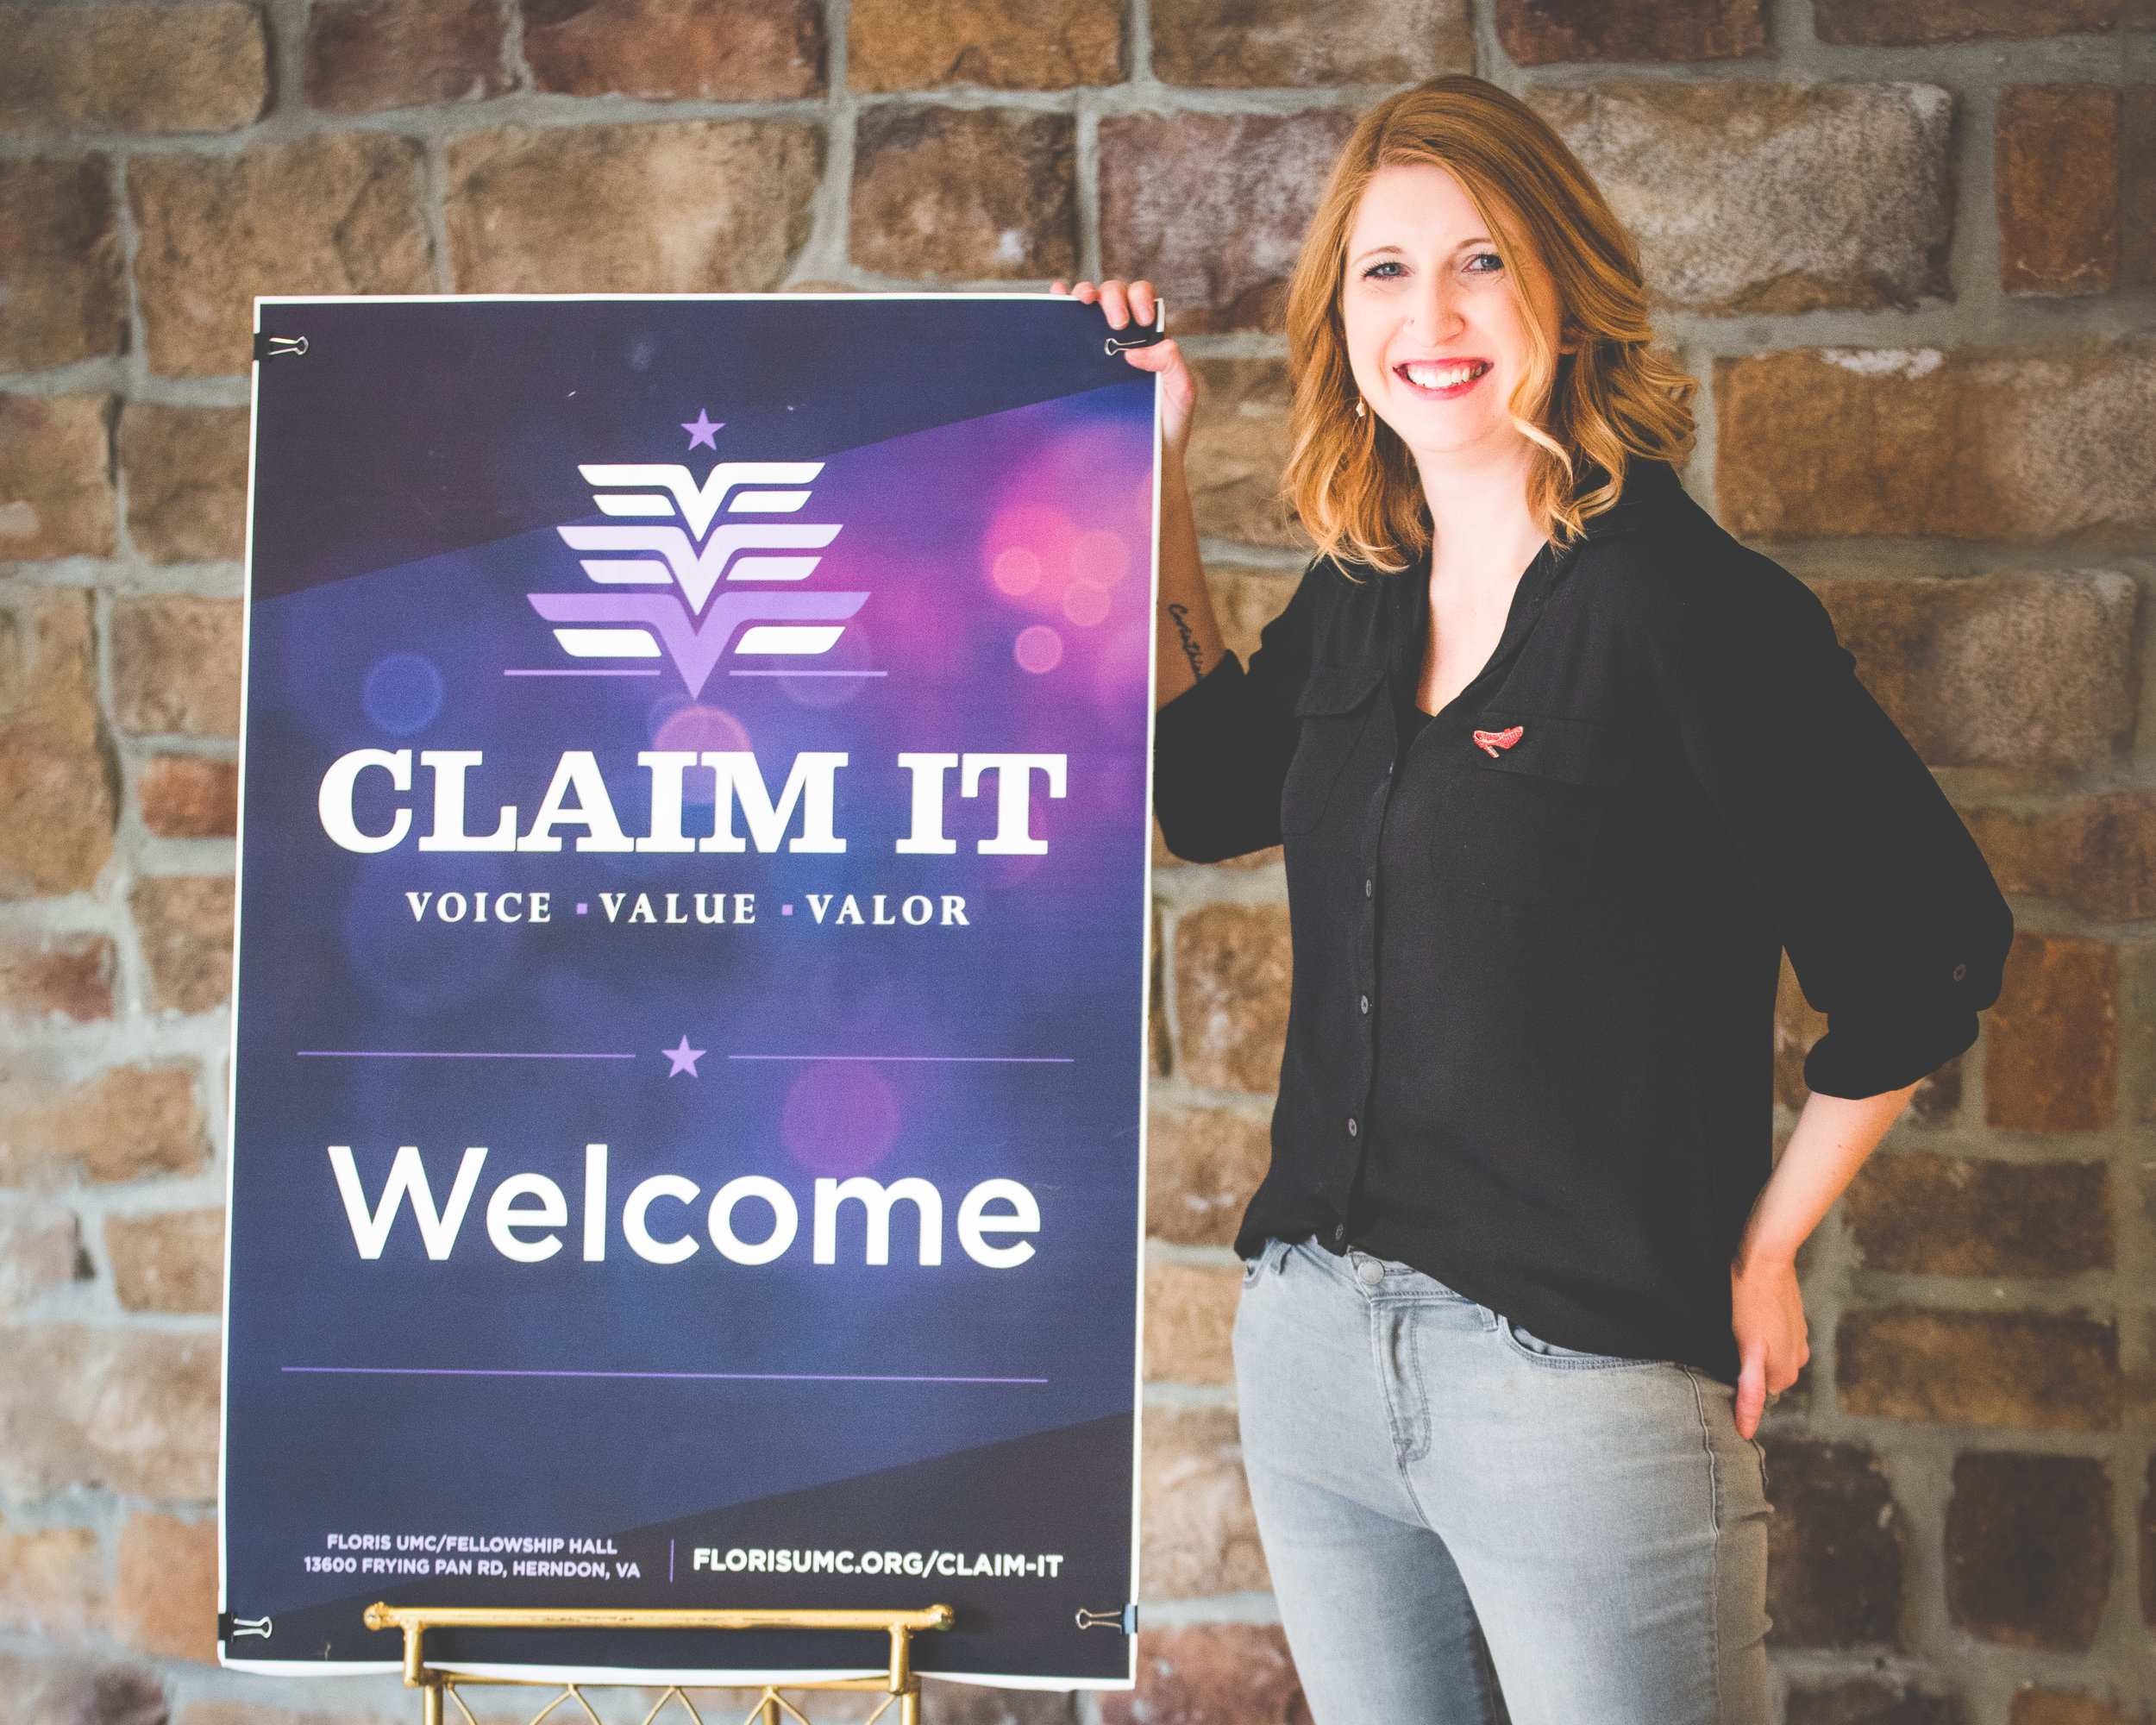 21_2019_February_09-02_19_2019_Megan_Rae_Seals_Claim_It_Conference-53727-Edit.jpg